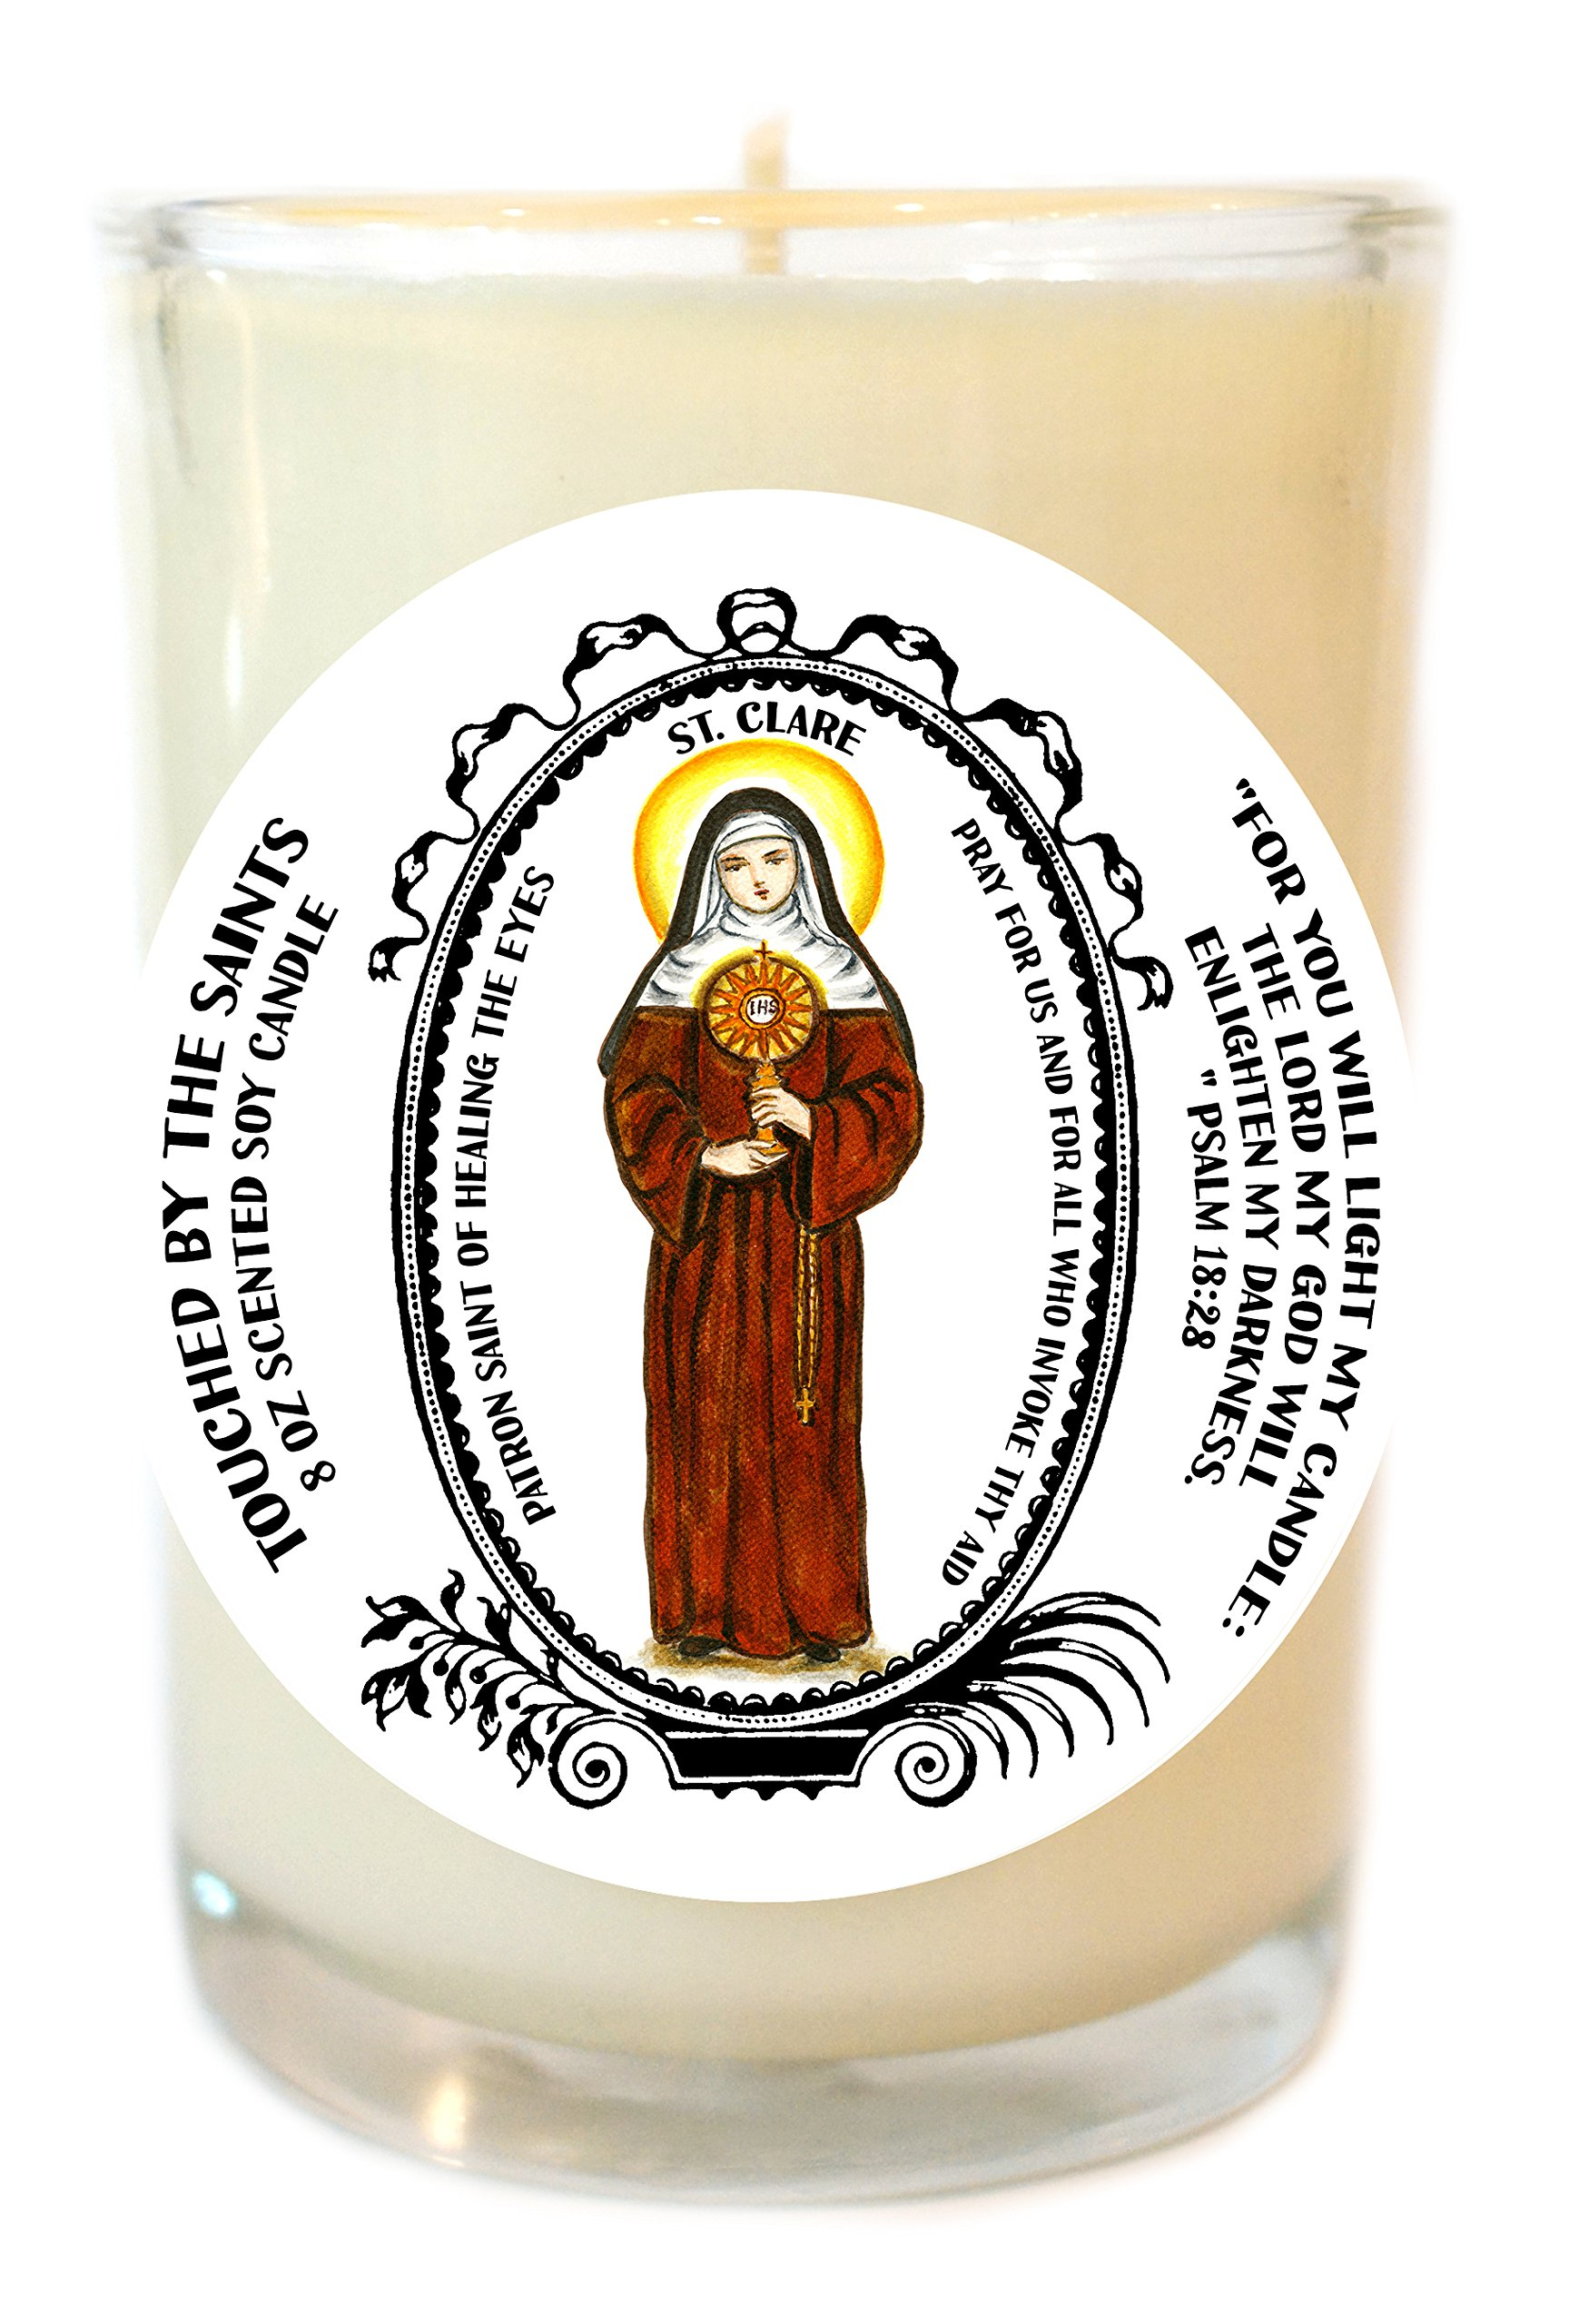 Saint Clare for Healing the Eyes 8 Oz Scented Soy Glass Prayer Candle